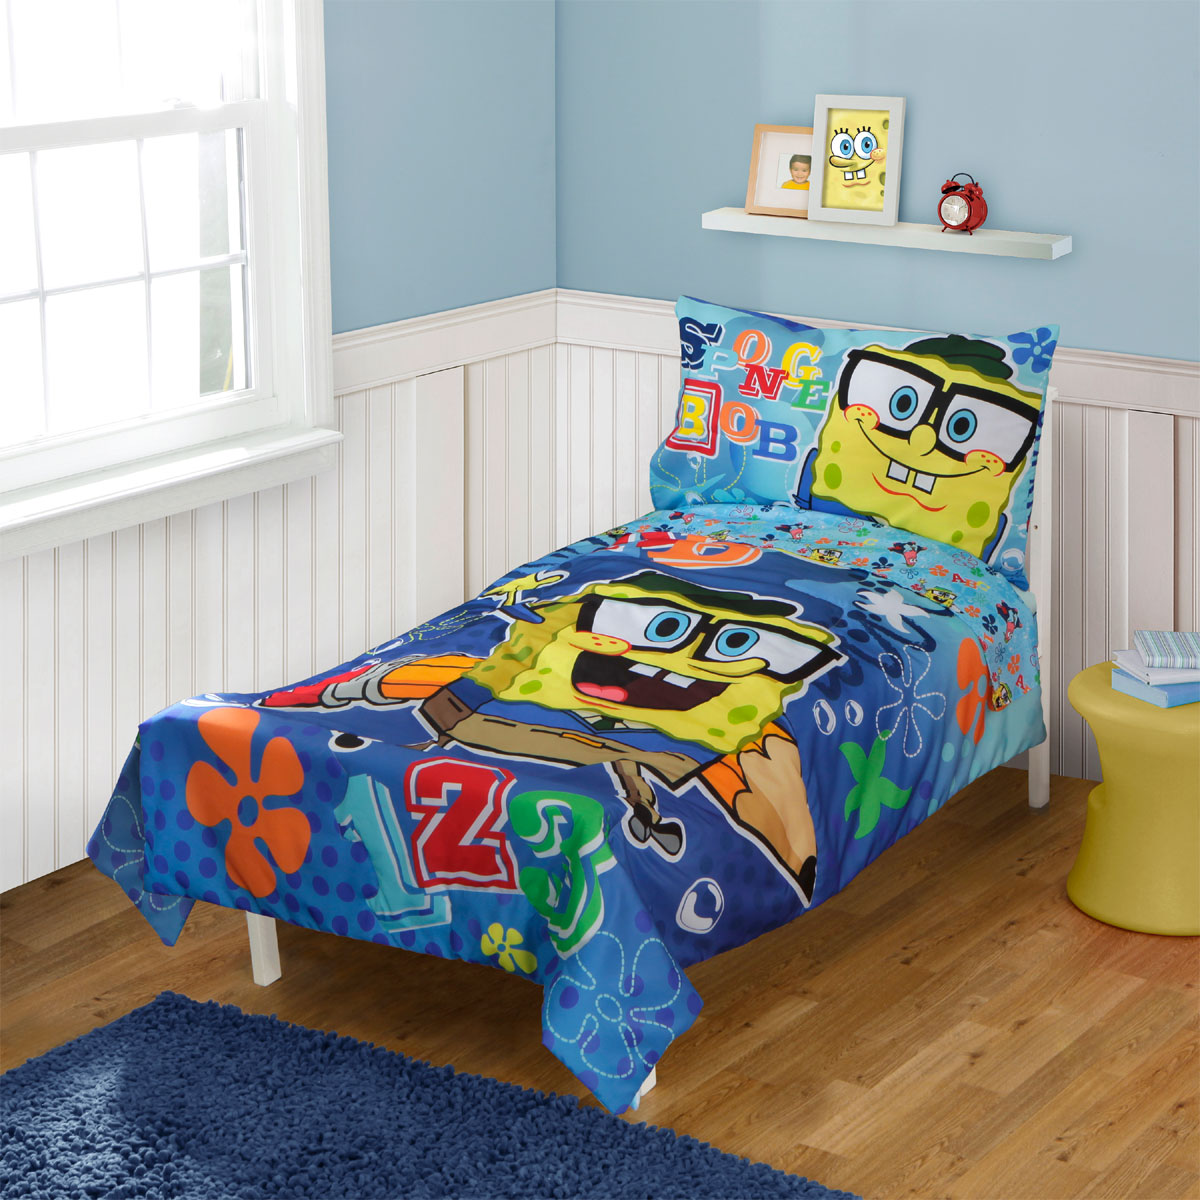 Lego Comforter | Bubble Guppies Bedding | Toy Story Bedding